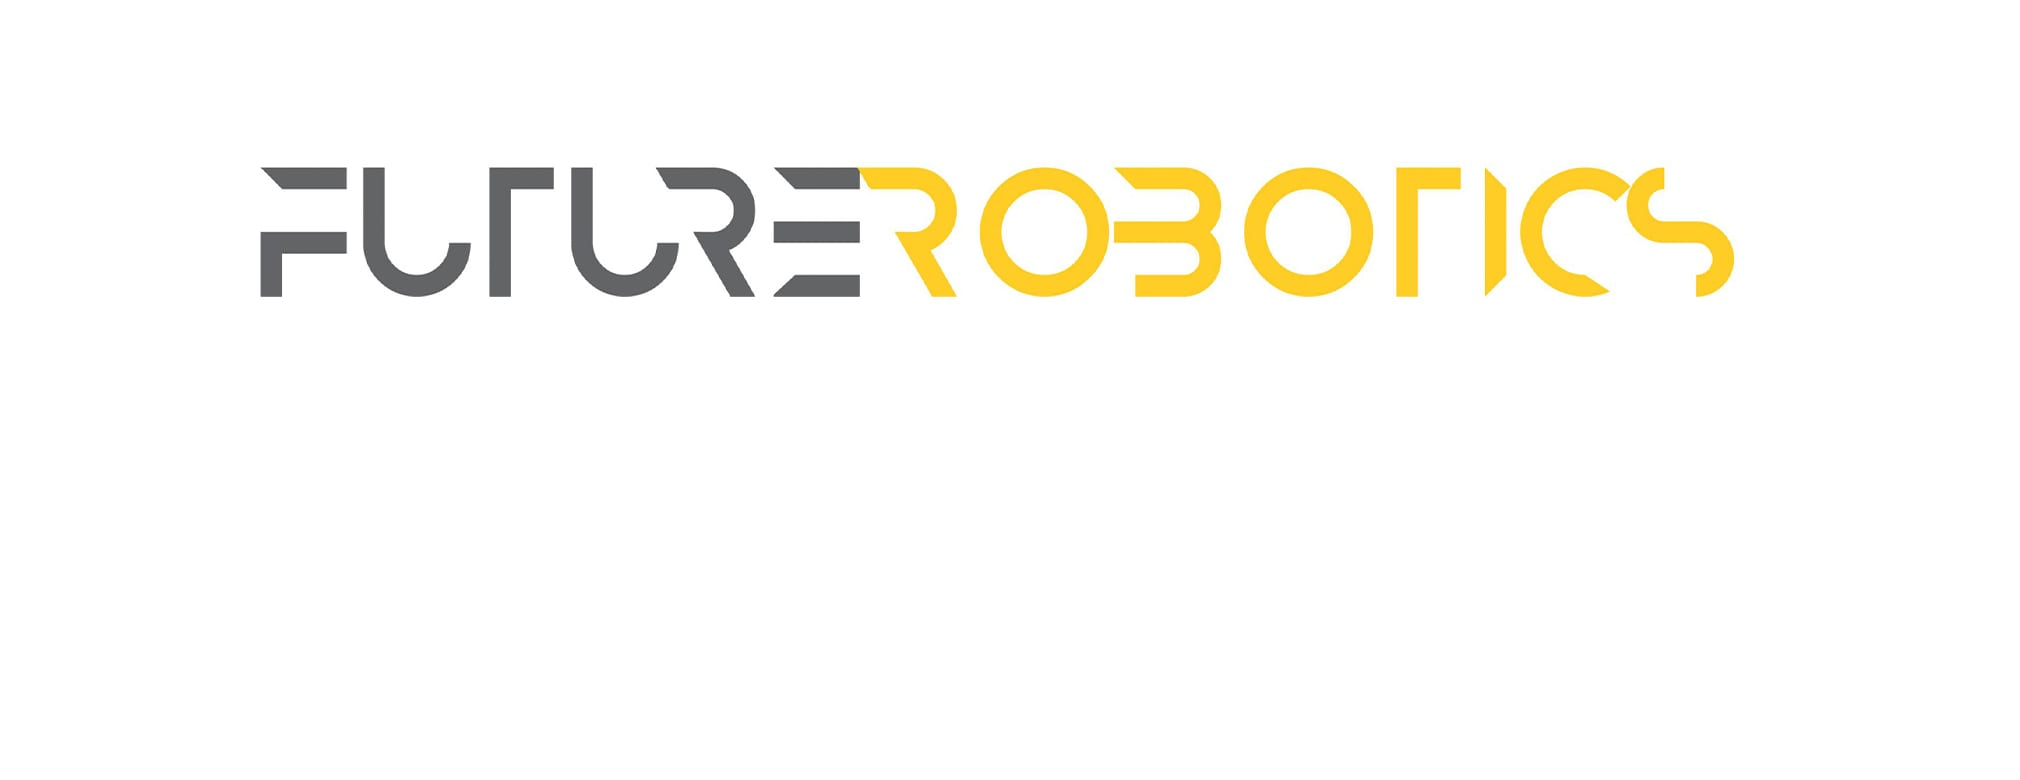 Future-Robotics-logo-2